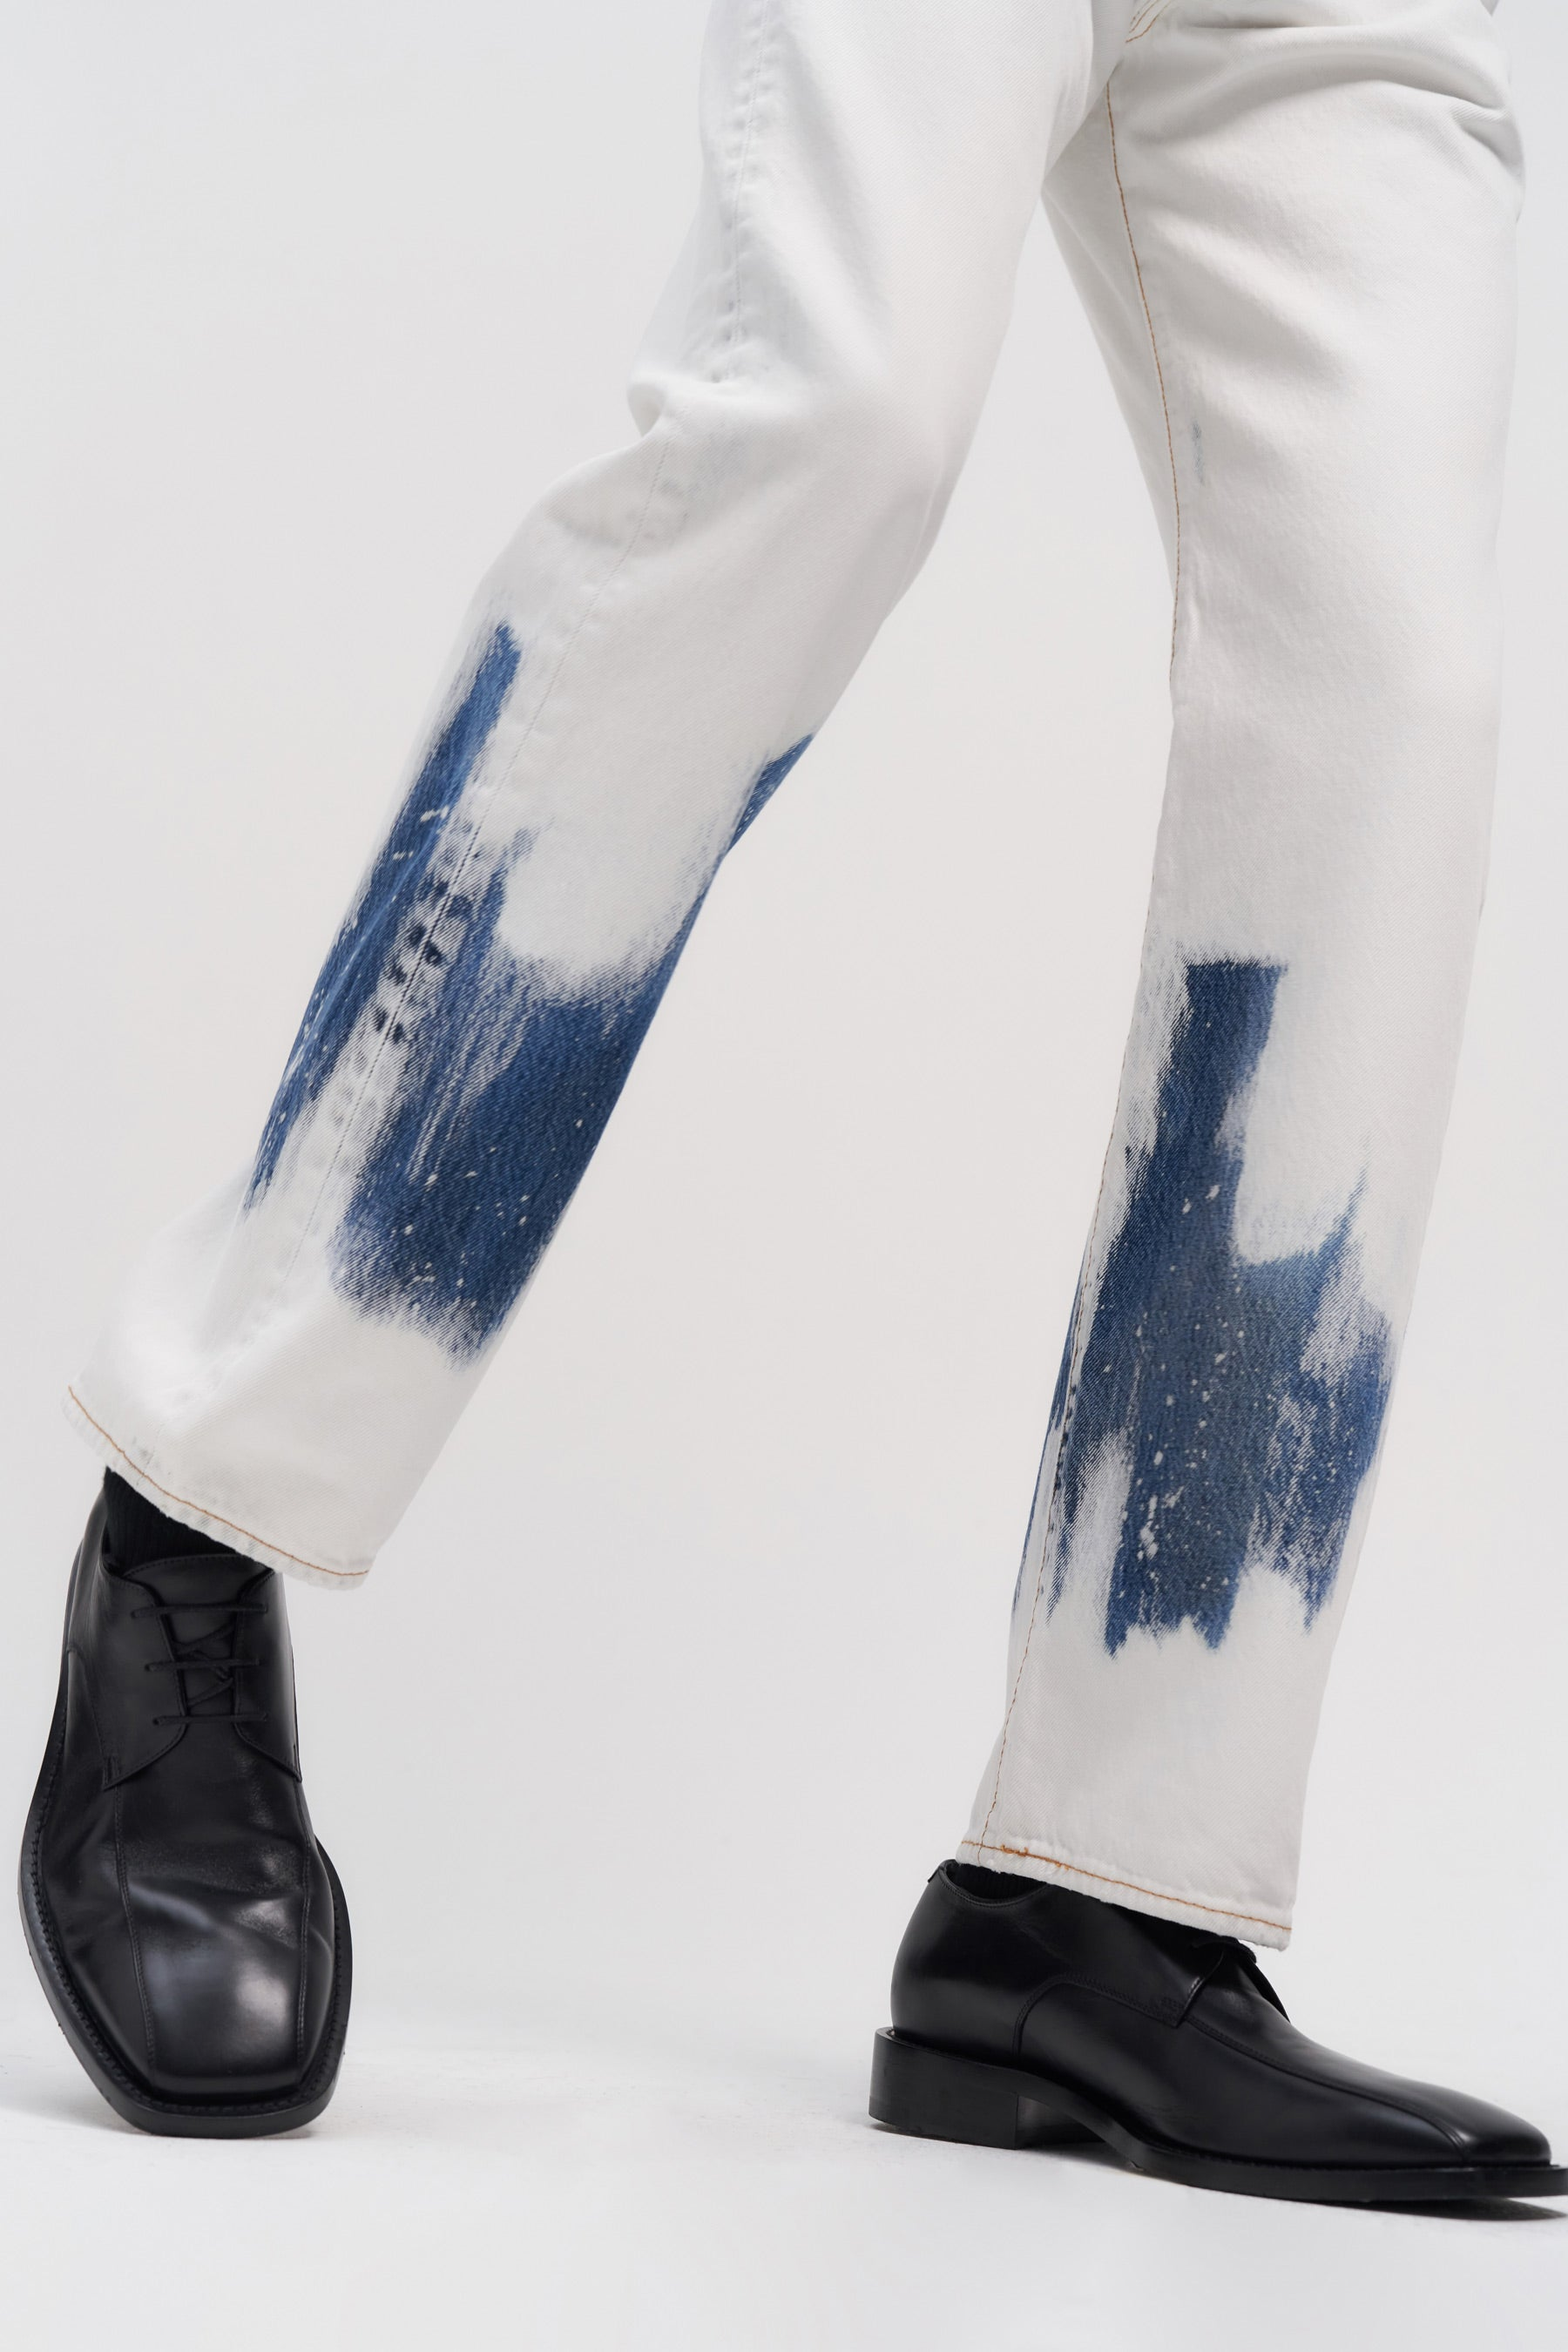 RE-edited Bleached Levi's 501 jeans